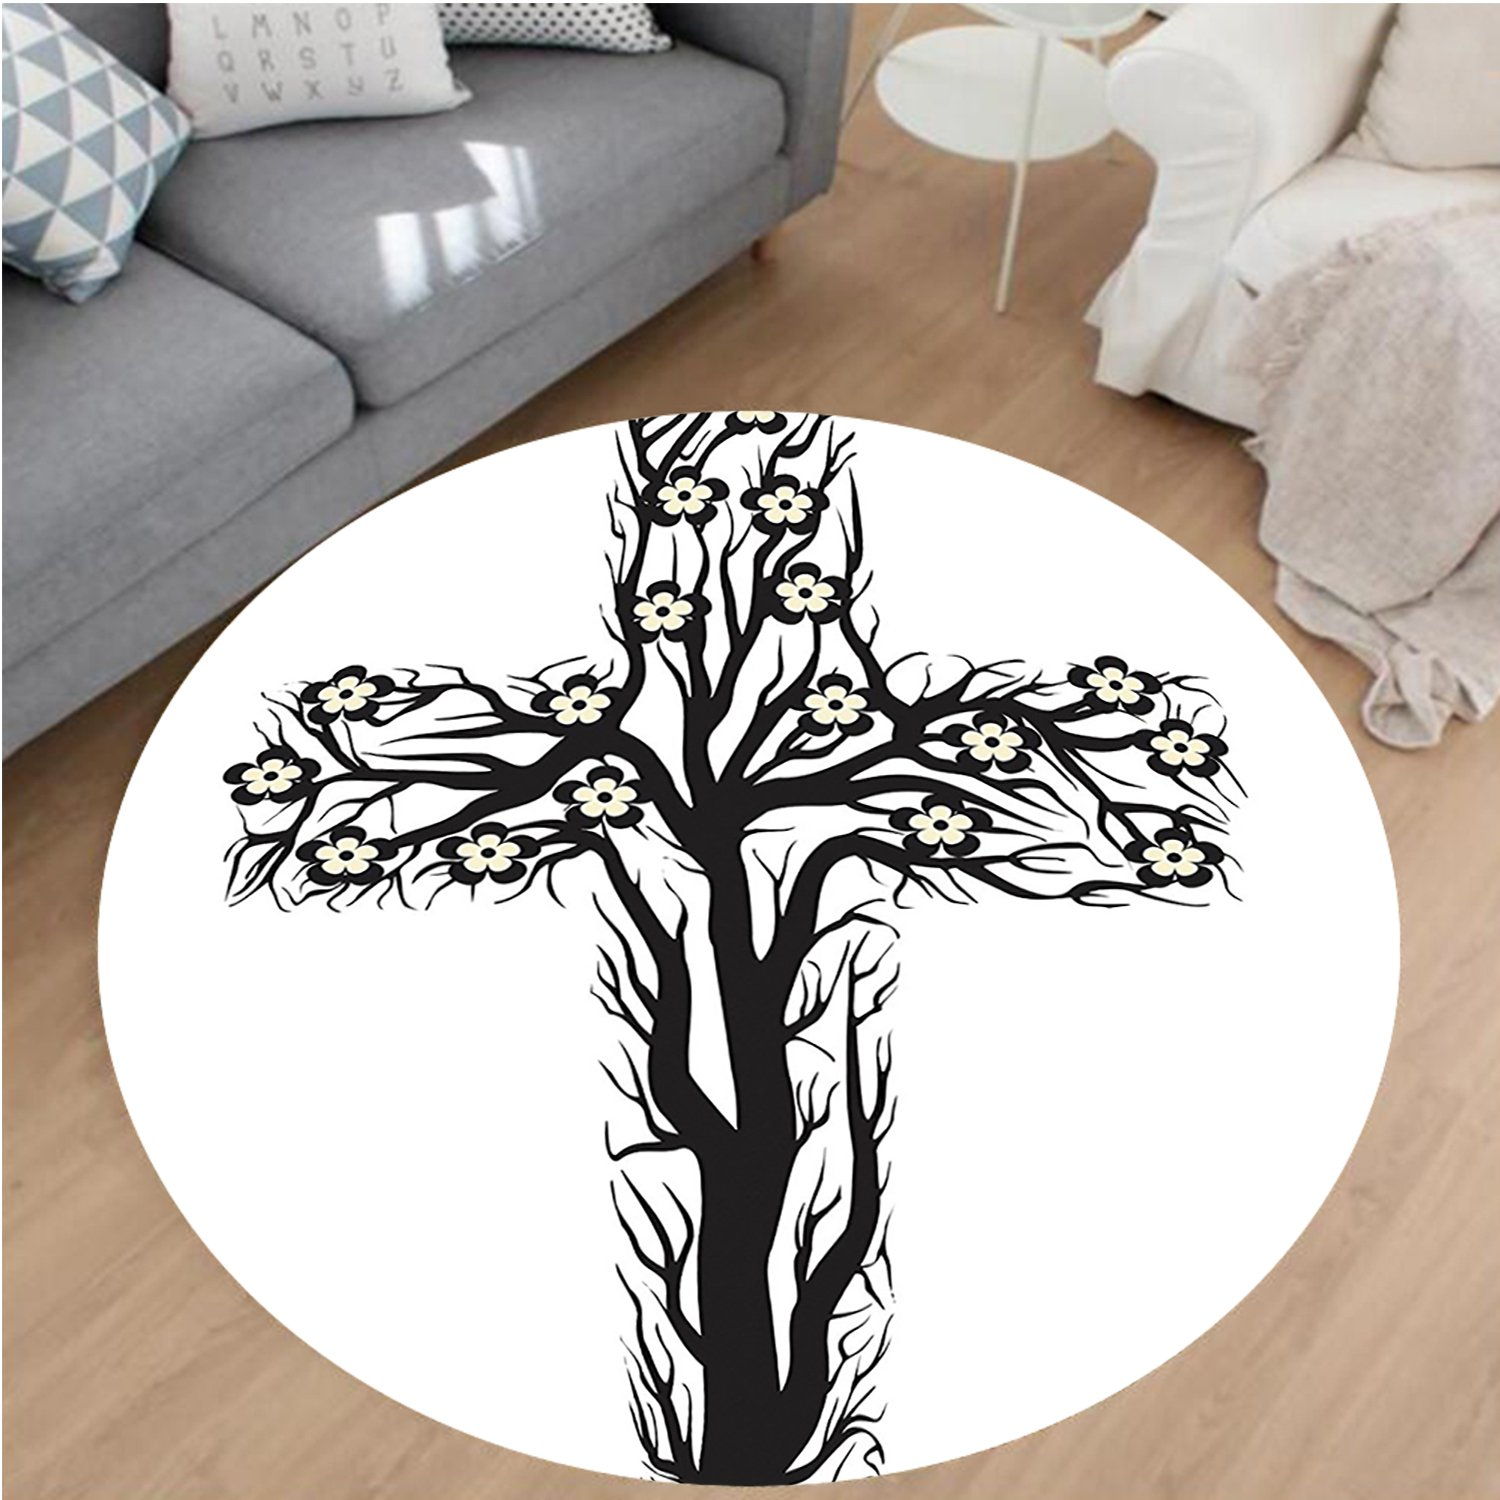 Nalahome Modern Flannel Microfiber Non-Slip Machine Washable Round Area Rug-l Christian Cross in Tree Shape Christ Religion Prayer Blessed Miracle Symbol Black White area rugs Home Decor-Round 71'' by Nalahome